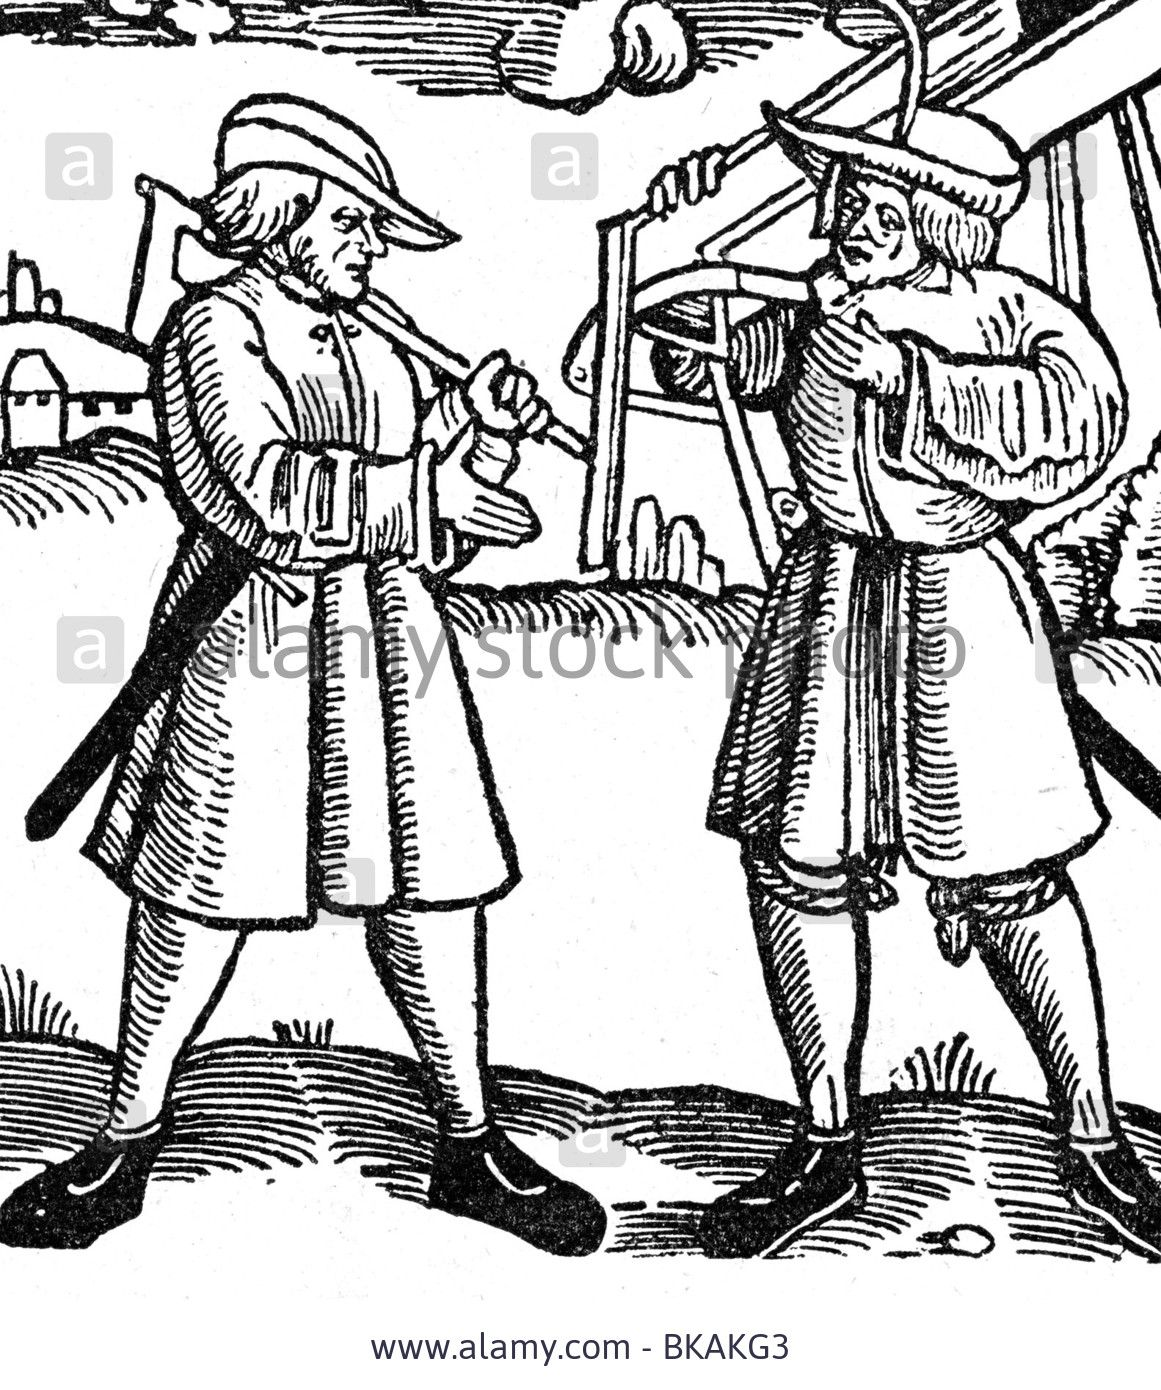 agriculture, peasants, Germany, 16th century, two peasants